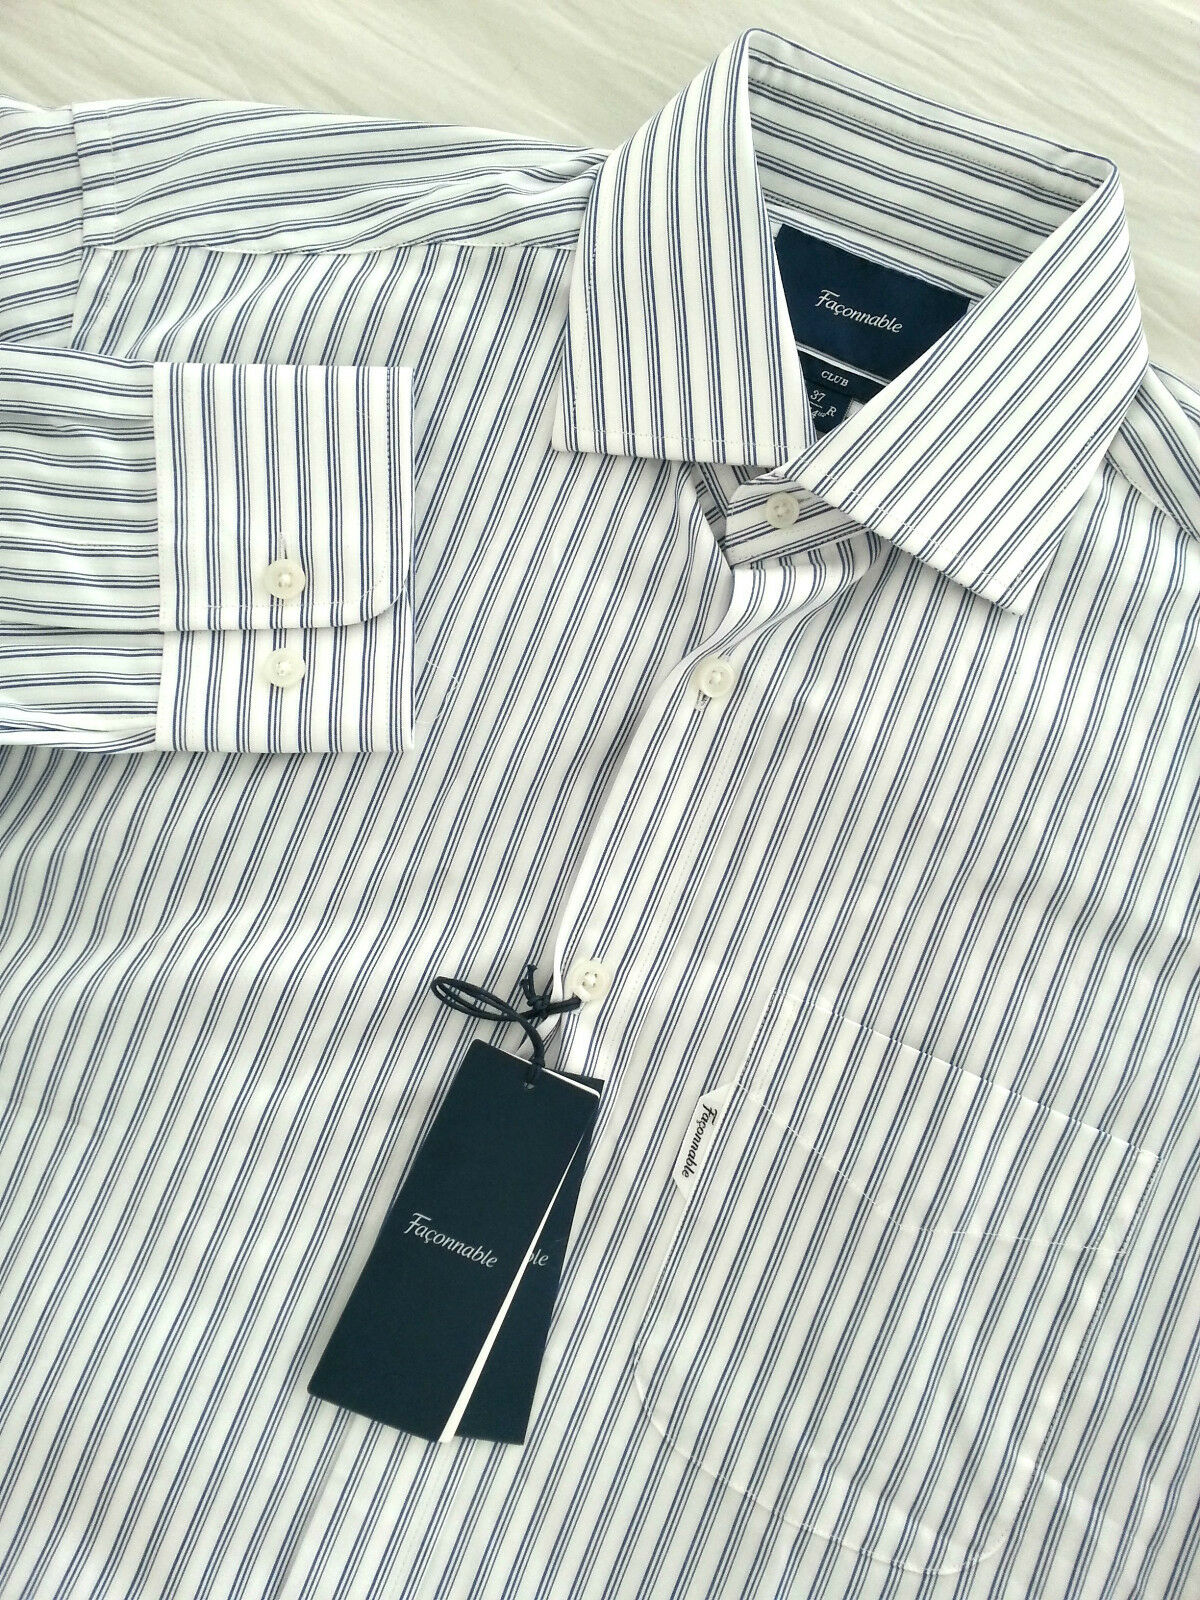 NWT FACONNABLE Men's Long Sleeve White bluee Striped Dress Shirt Size 14 1 2 CLUB